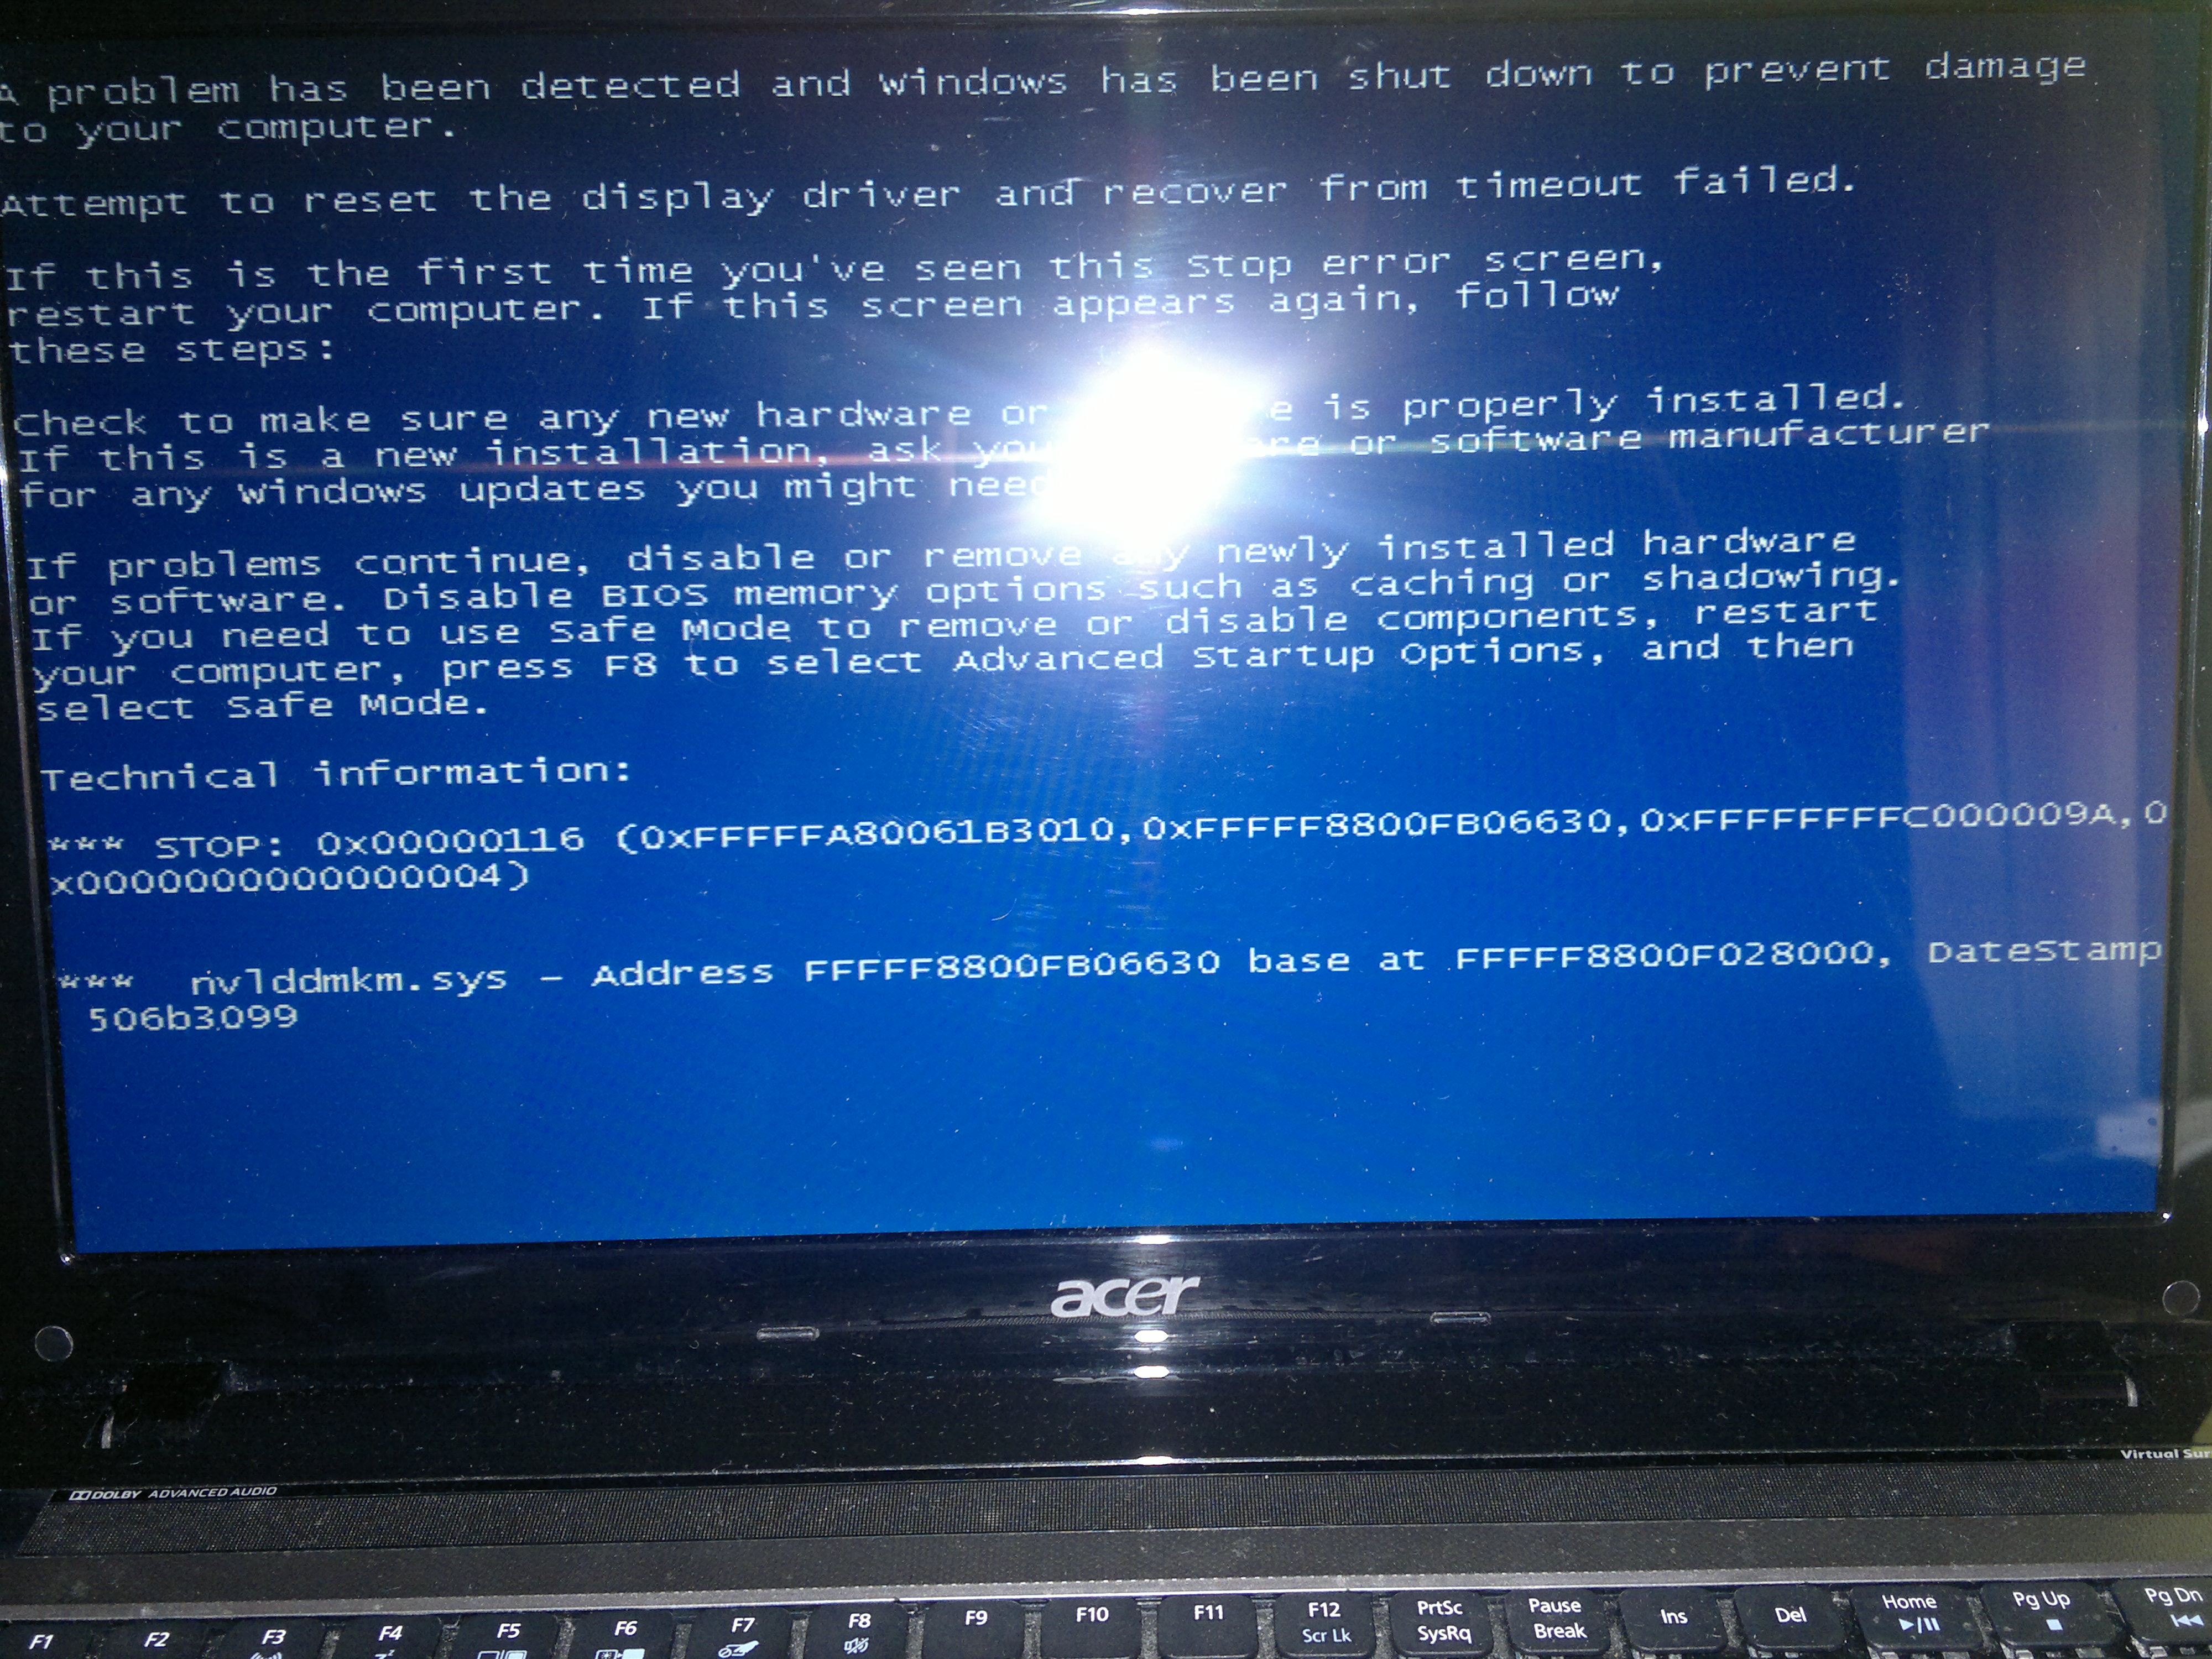 Acer Aspire 5750G - Blue screen 0x00000116 / nvlddmkm.sys